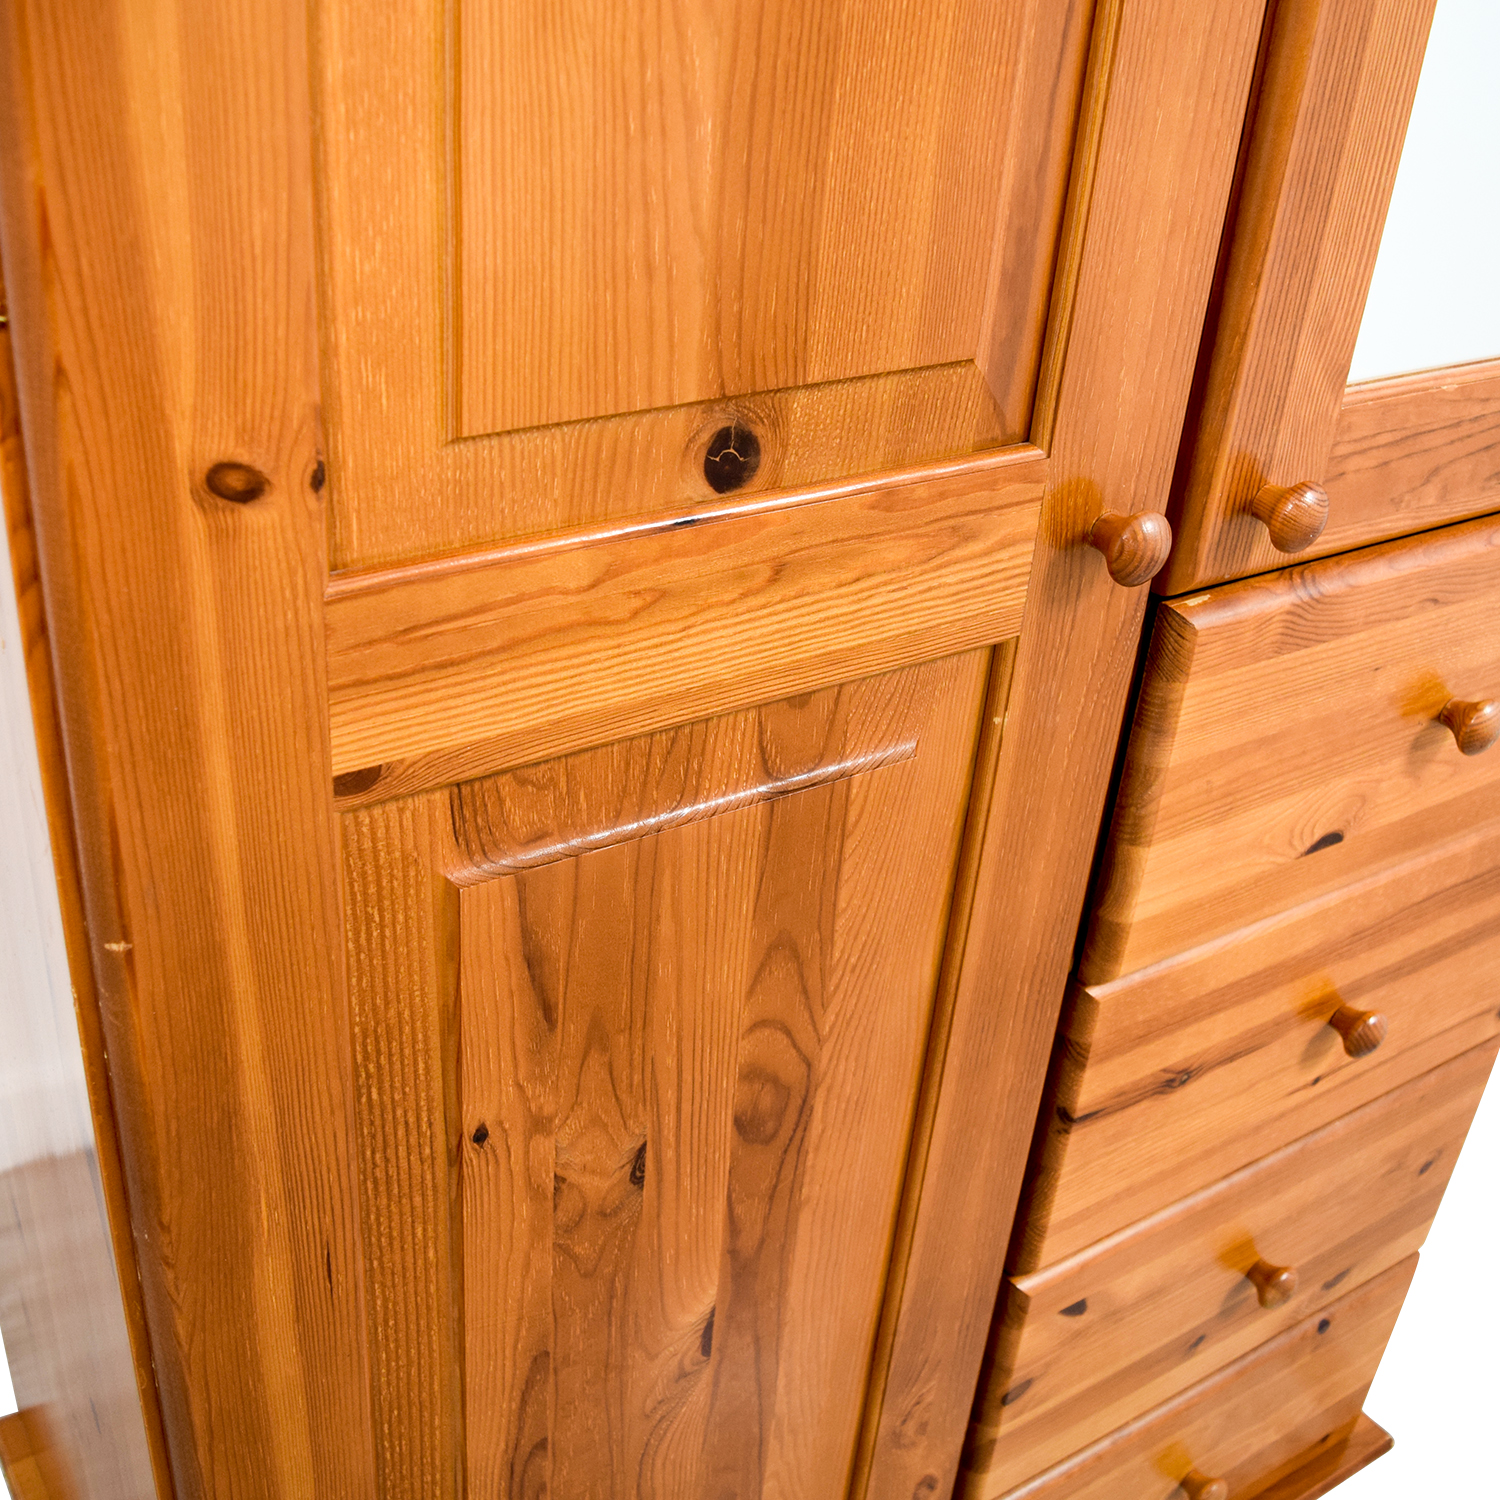 Wood Armoire with Rack Drawers and Shelves used